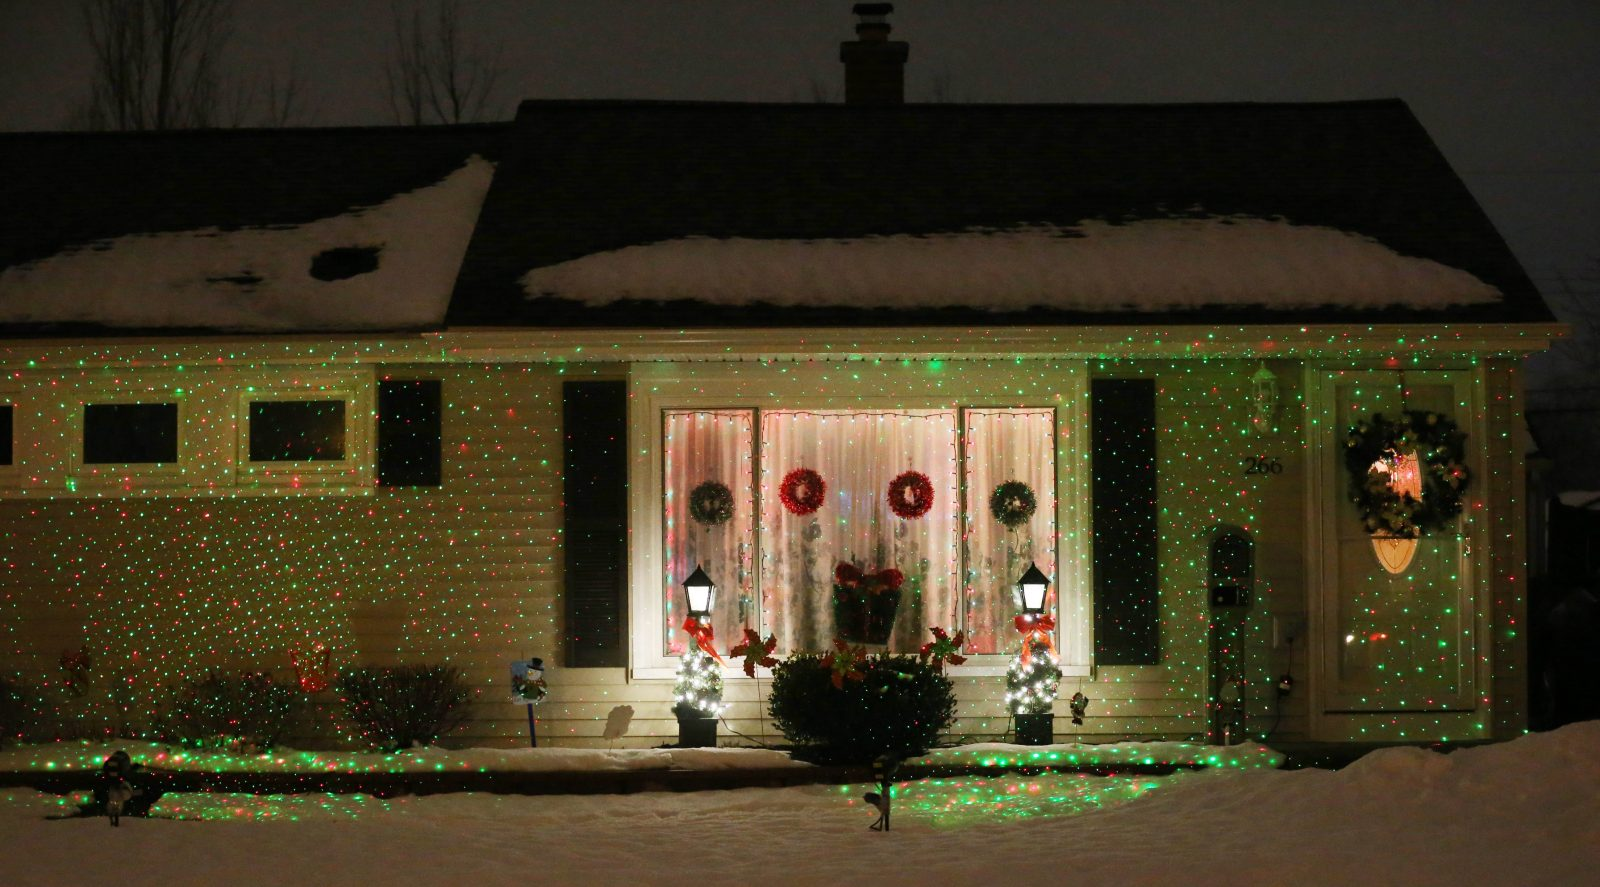 Projected Christmas laser lights have become a popular and easy way to decorated home exteriors.  They decorate this home on Faraday Road in the Town of Tonawanda. (Sharon Cantillon/Buffalo News)